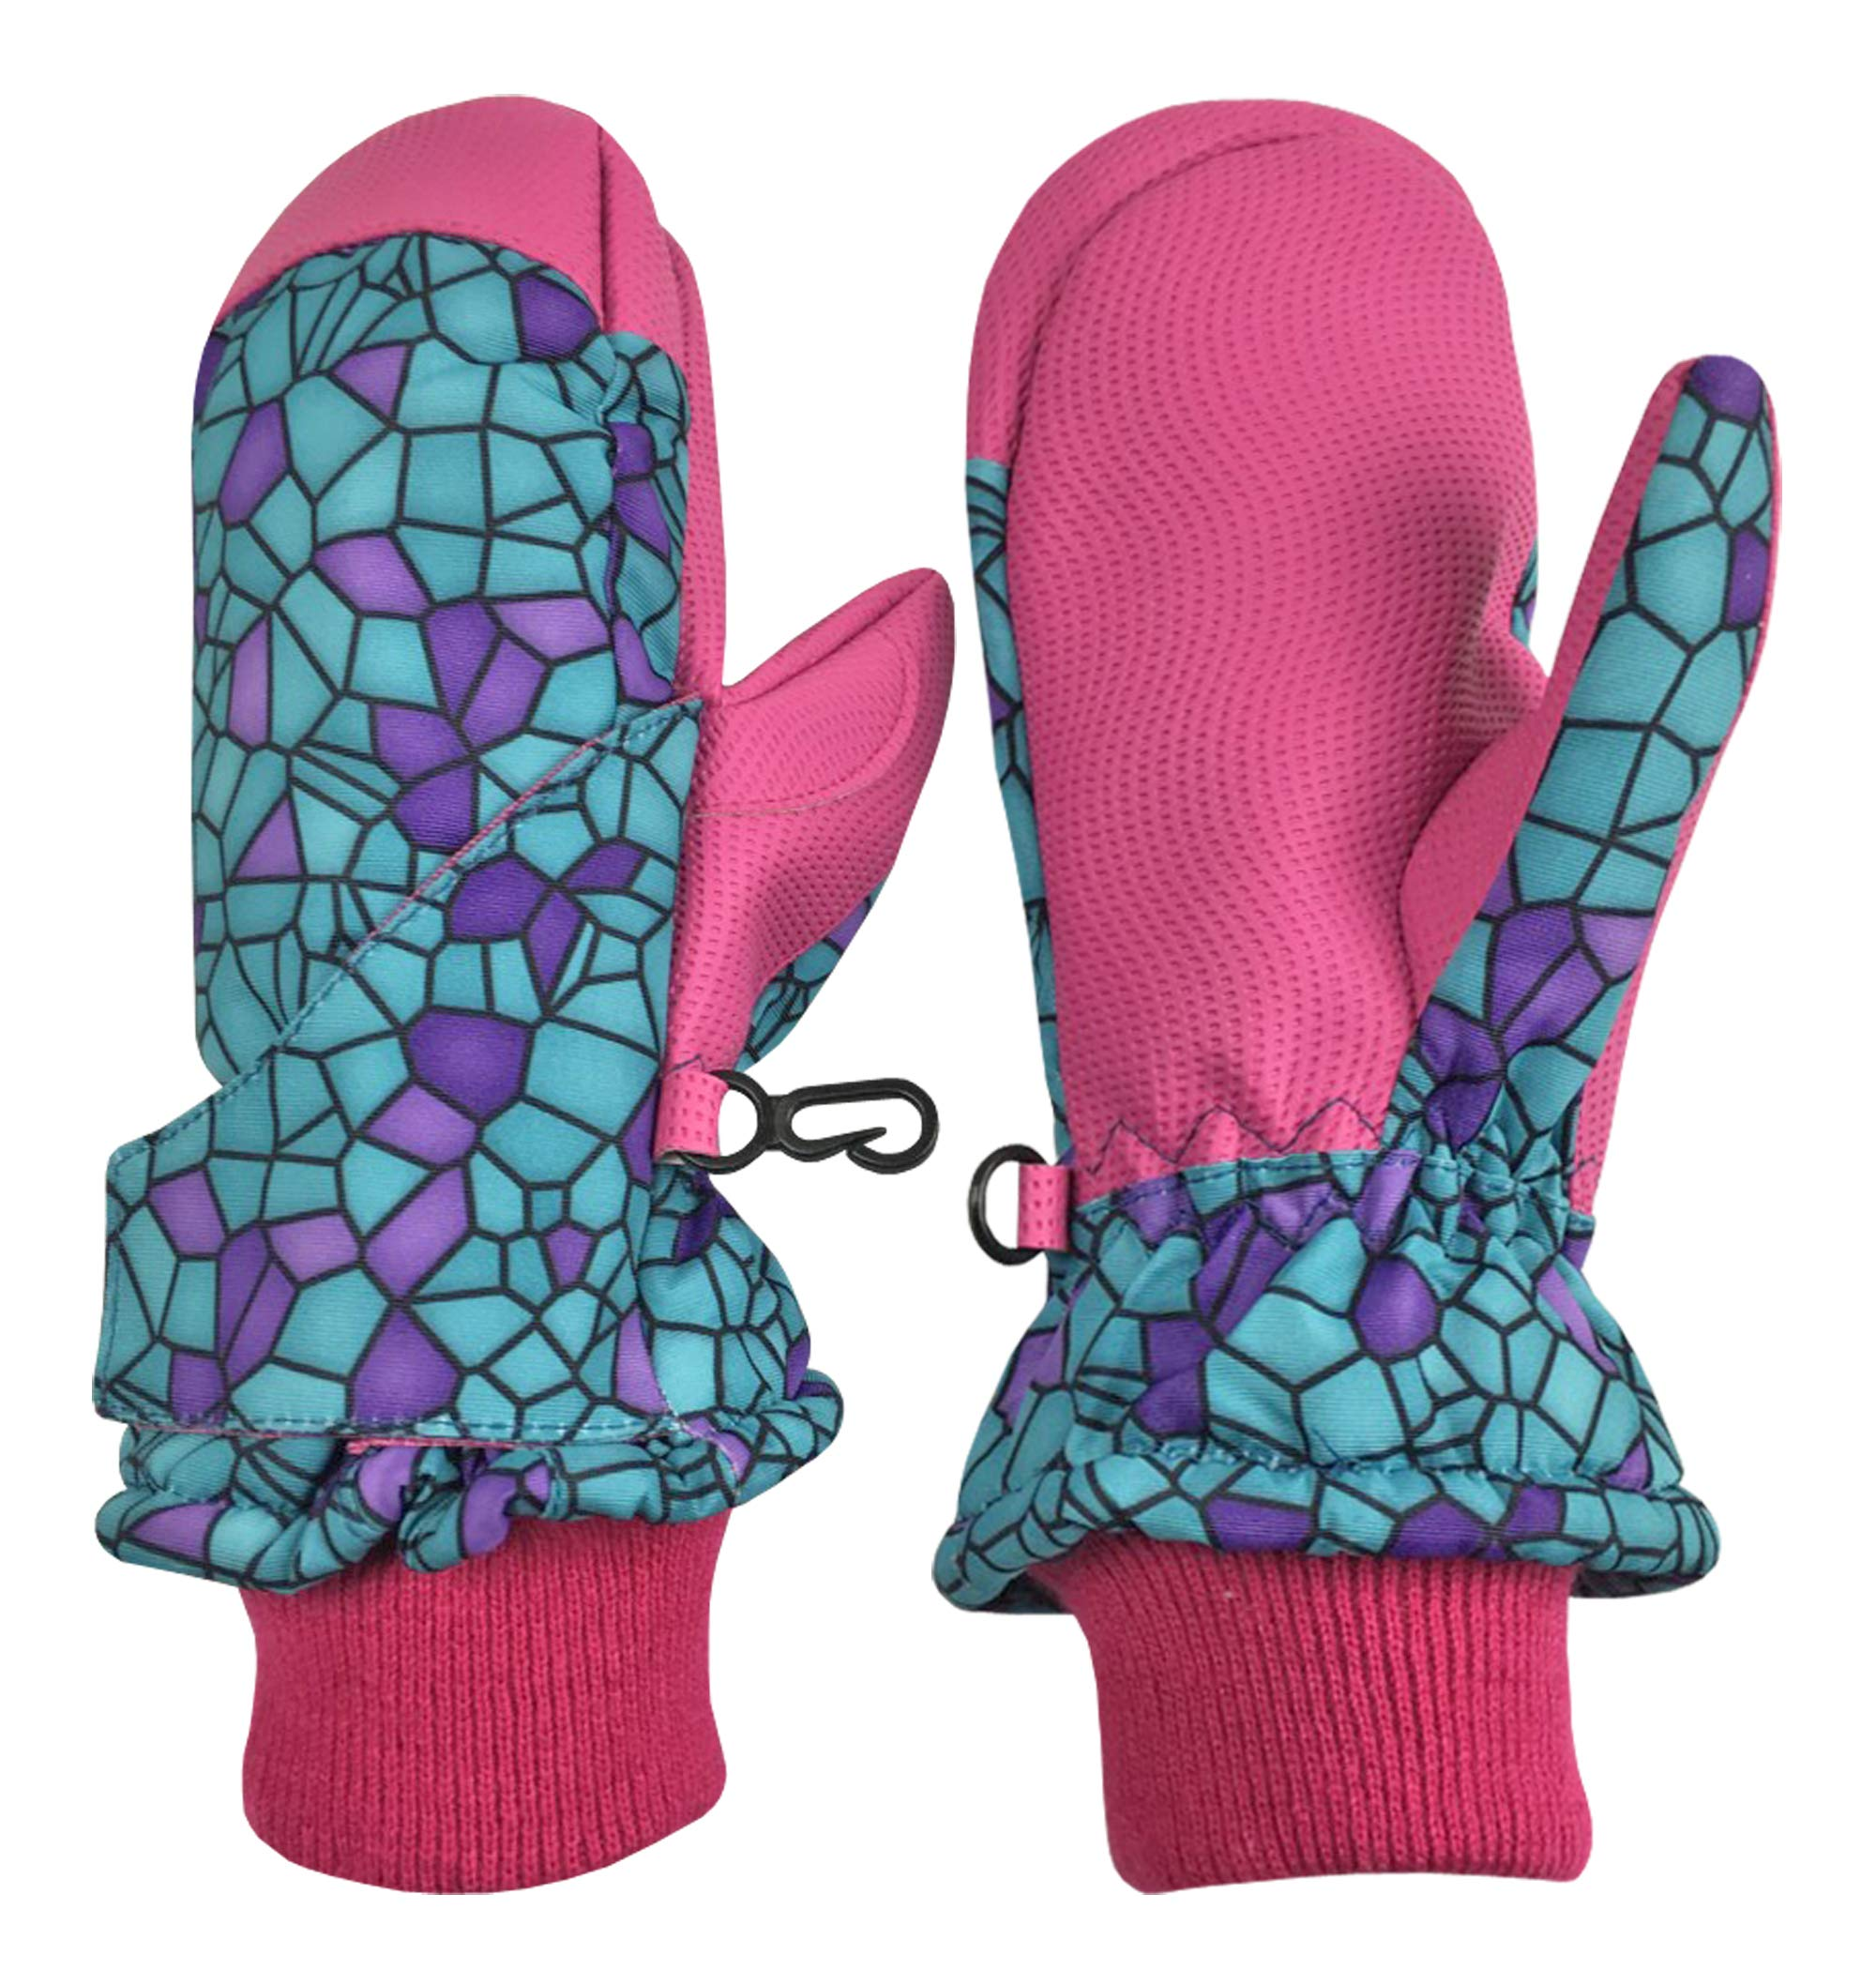 N'Ice Caps Kids and Baby Easy-On Wrap Waterproof Thinsulate Winter Snow Mitten (Turq Shattered Glass, 6-8 Years) by N'Ice Caps